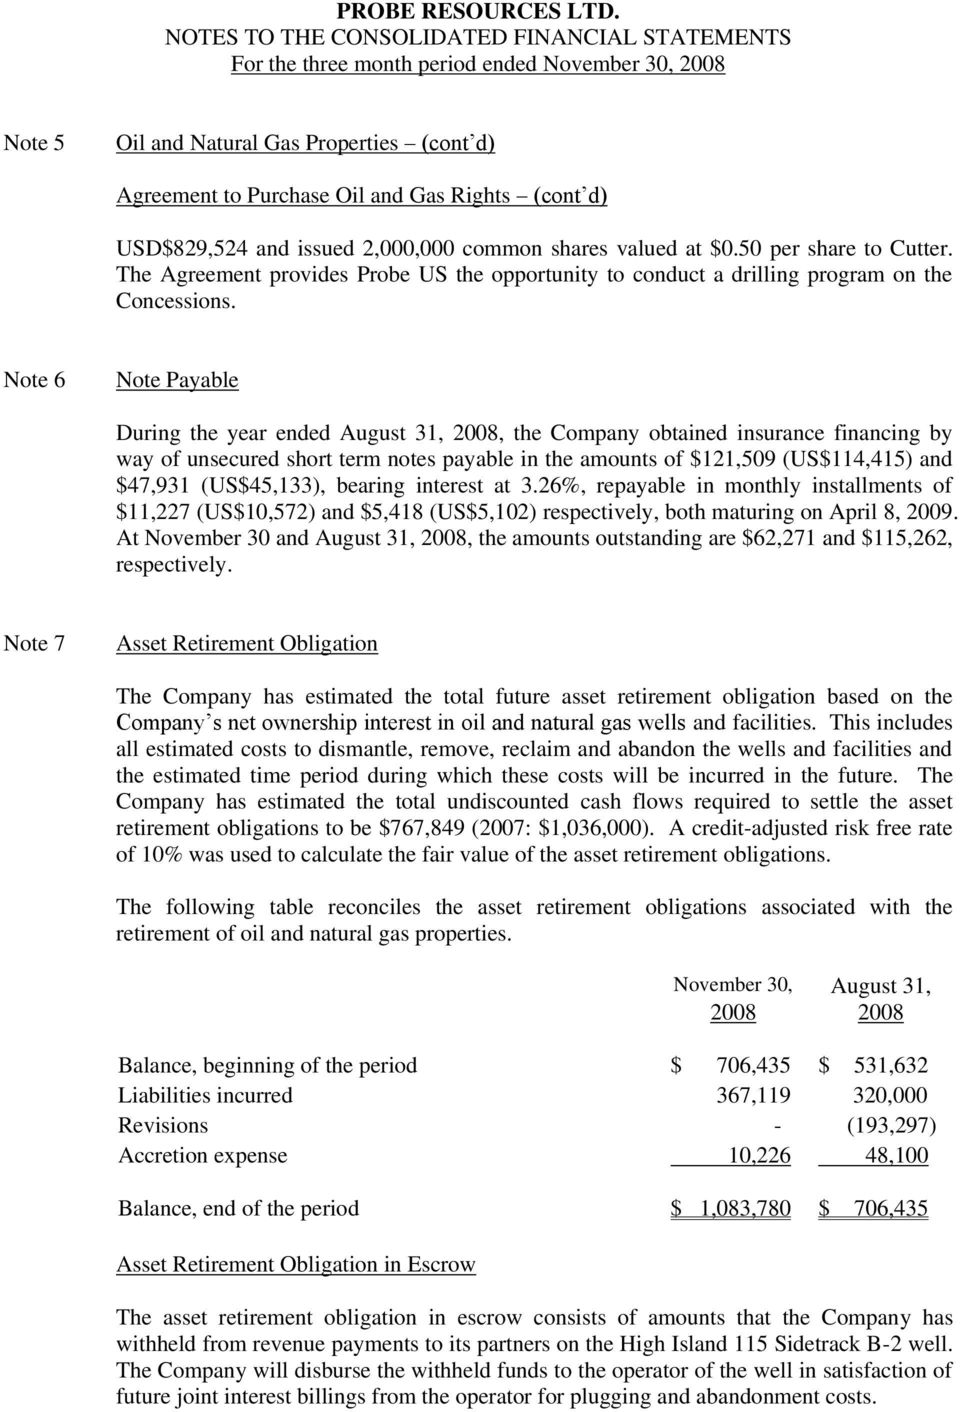 Note 6 Note Payable During the year ended August 31, 2008, the Company obtained insurance financing by way of unsecured short term notes payable in the amounts of $121,509 (US$114,415) and $47,931